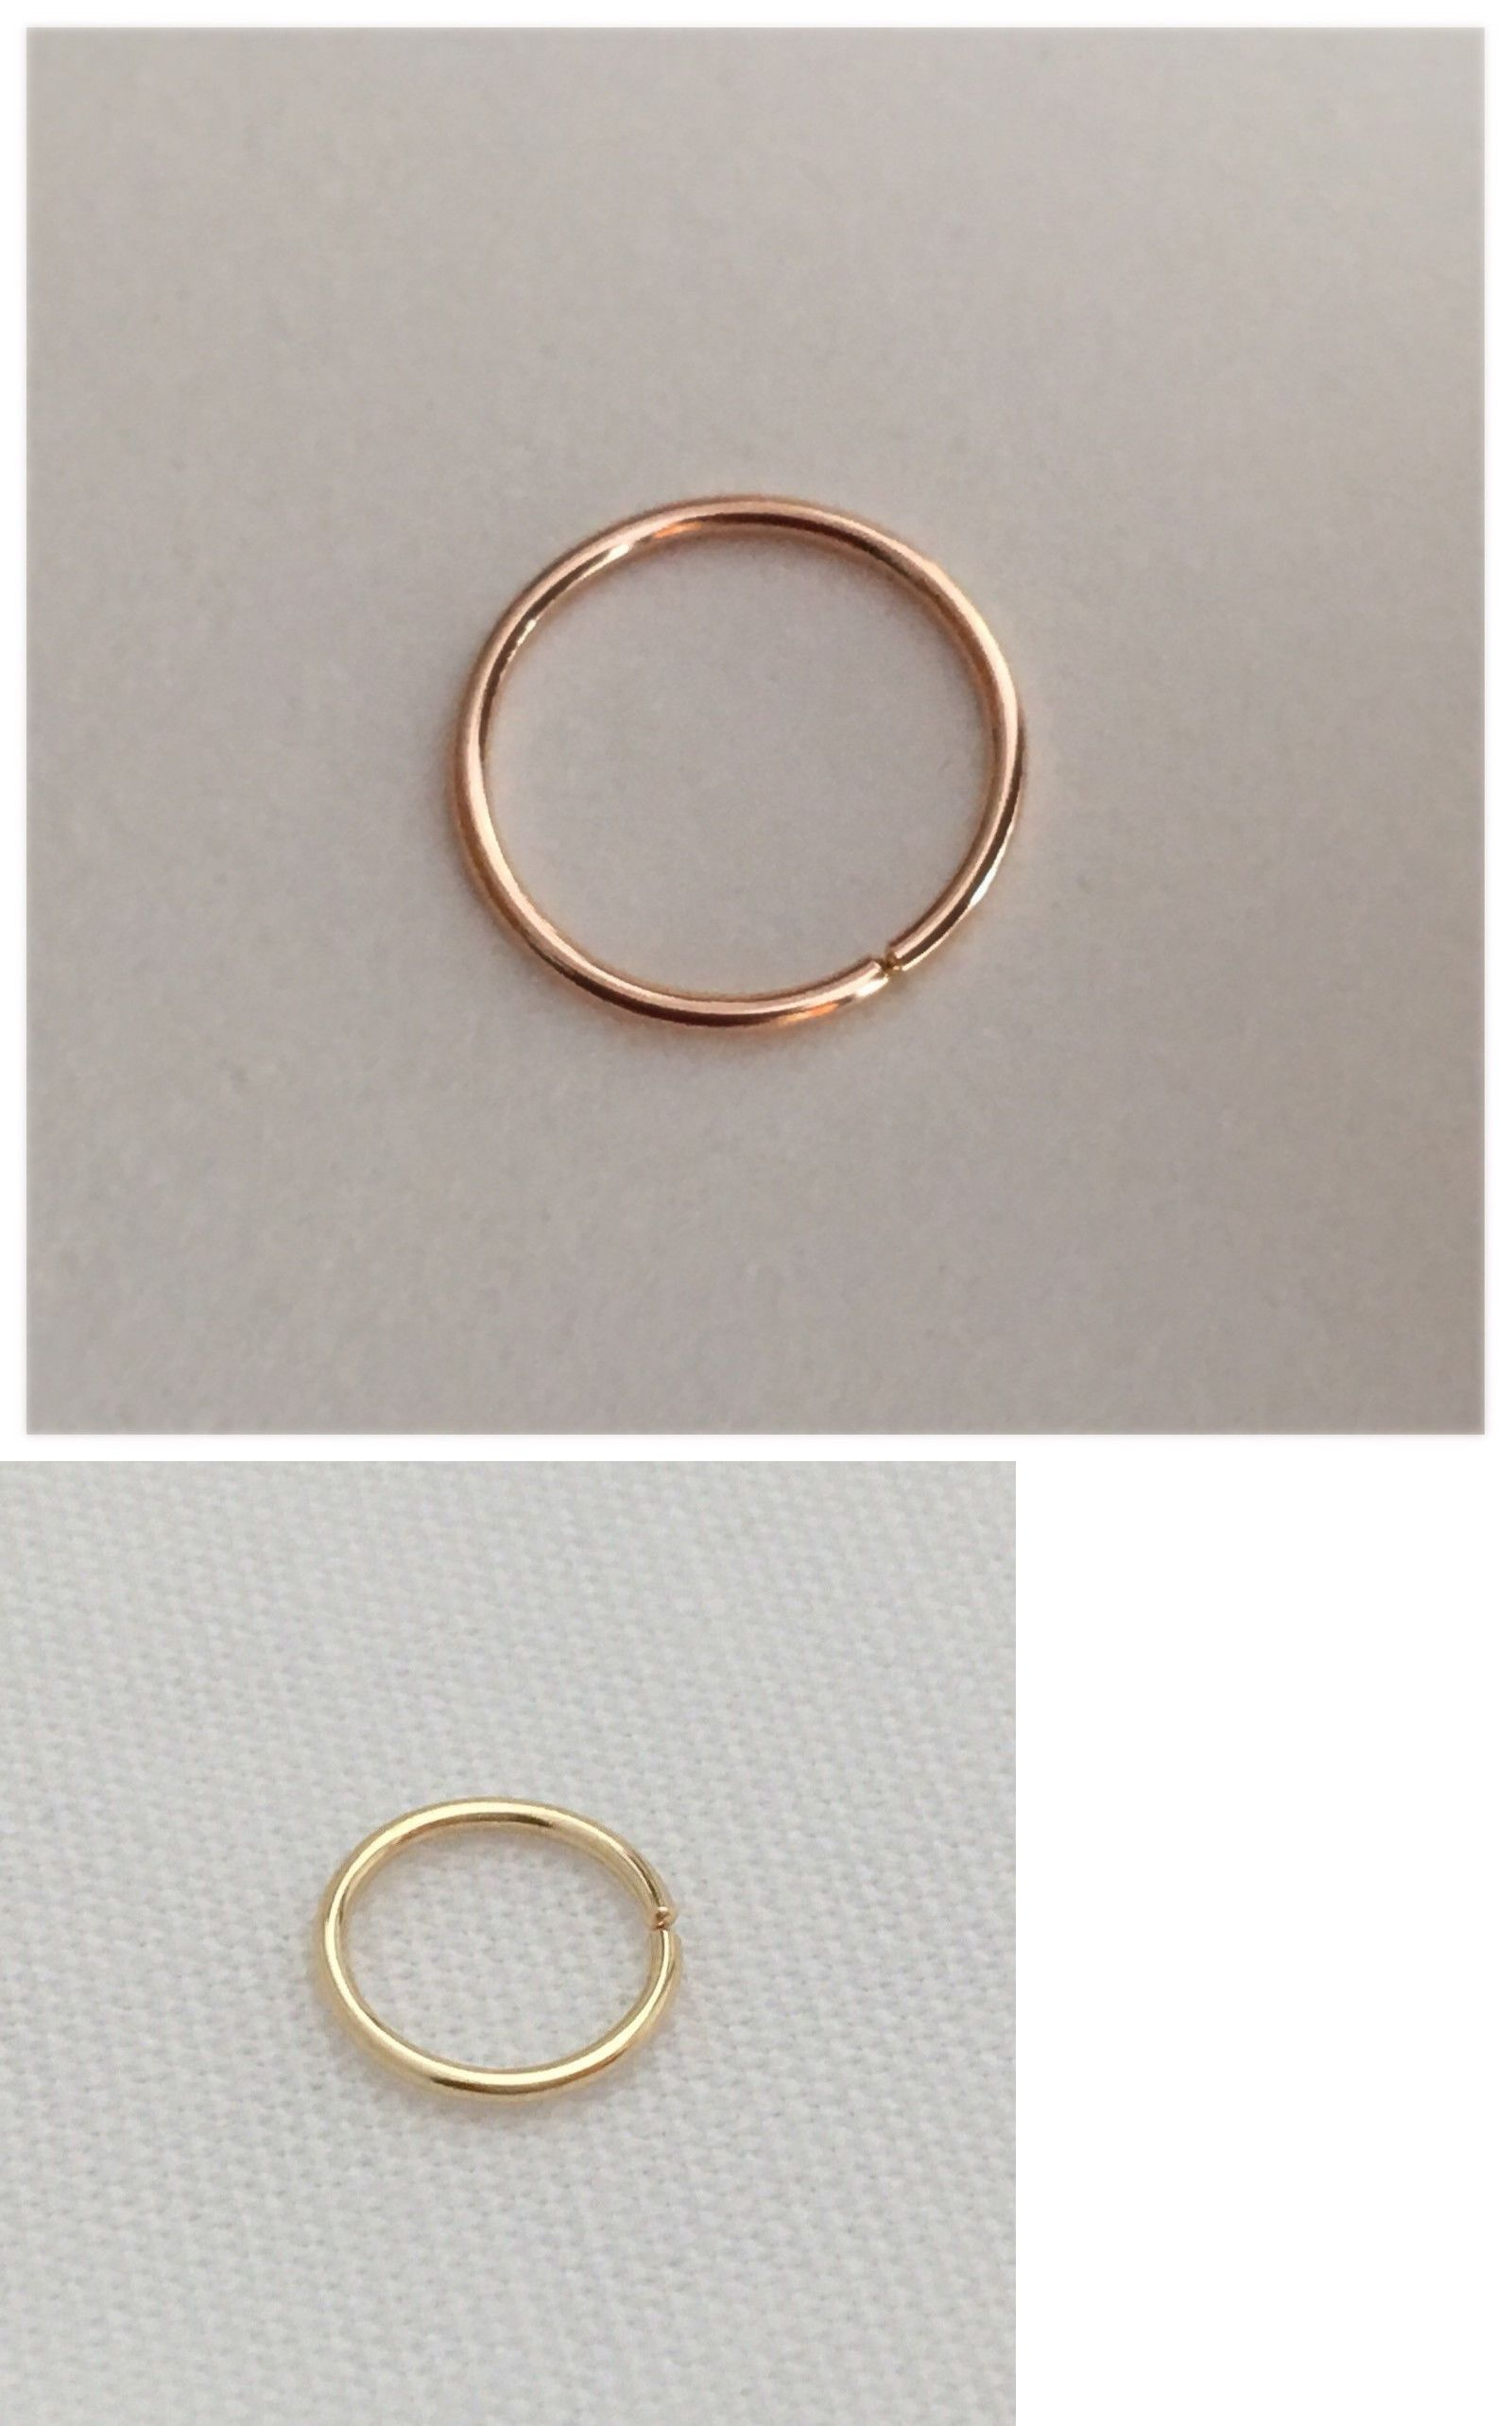 Body piercing jewelry  Body Piercing Jewelry  Nose Ring Solid Goldkt      Mm